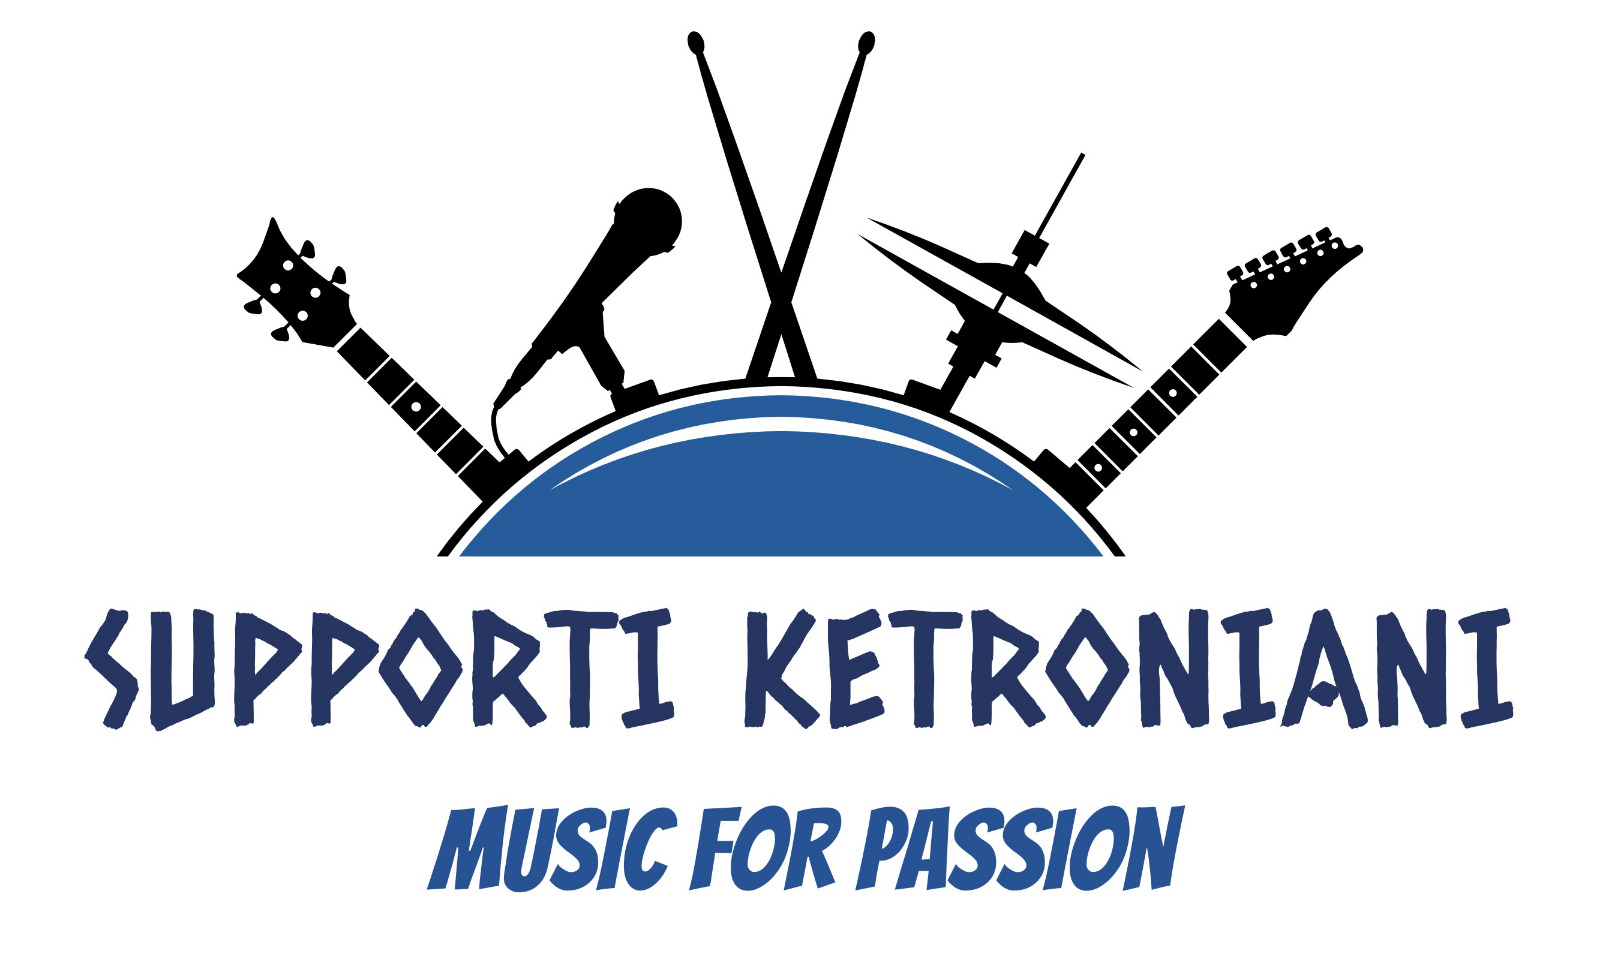 Supporti Ketroniani (Music for Passion)